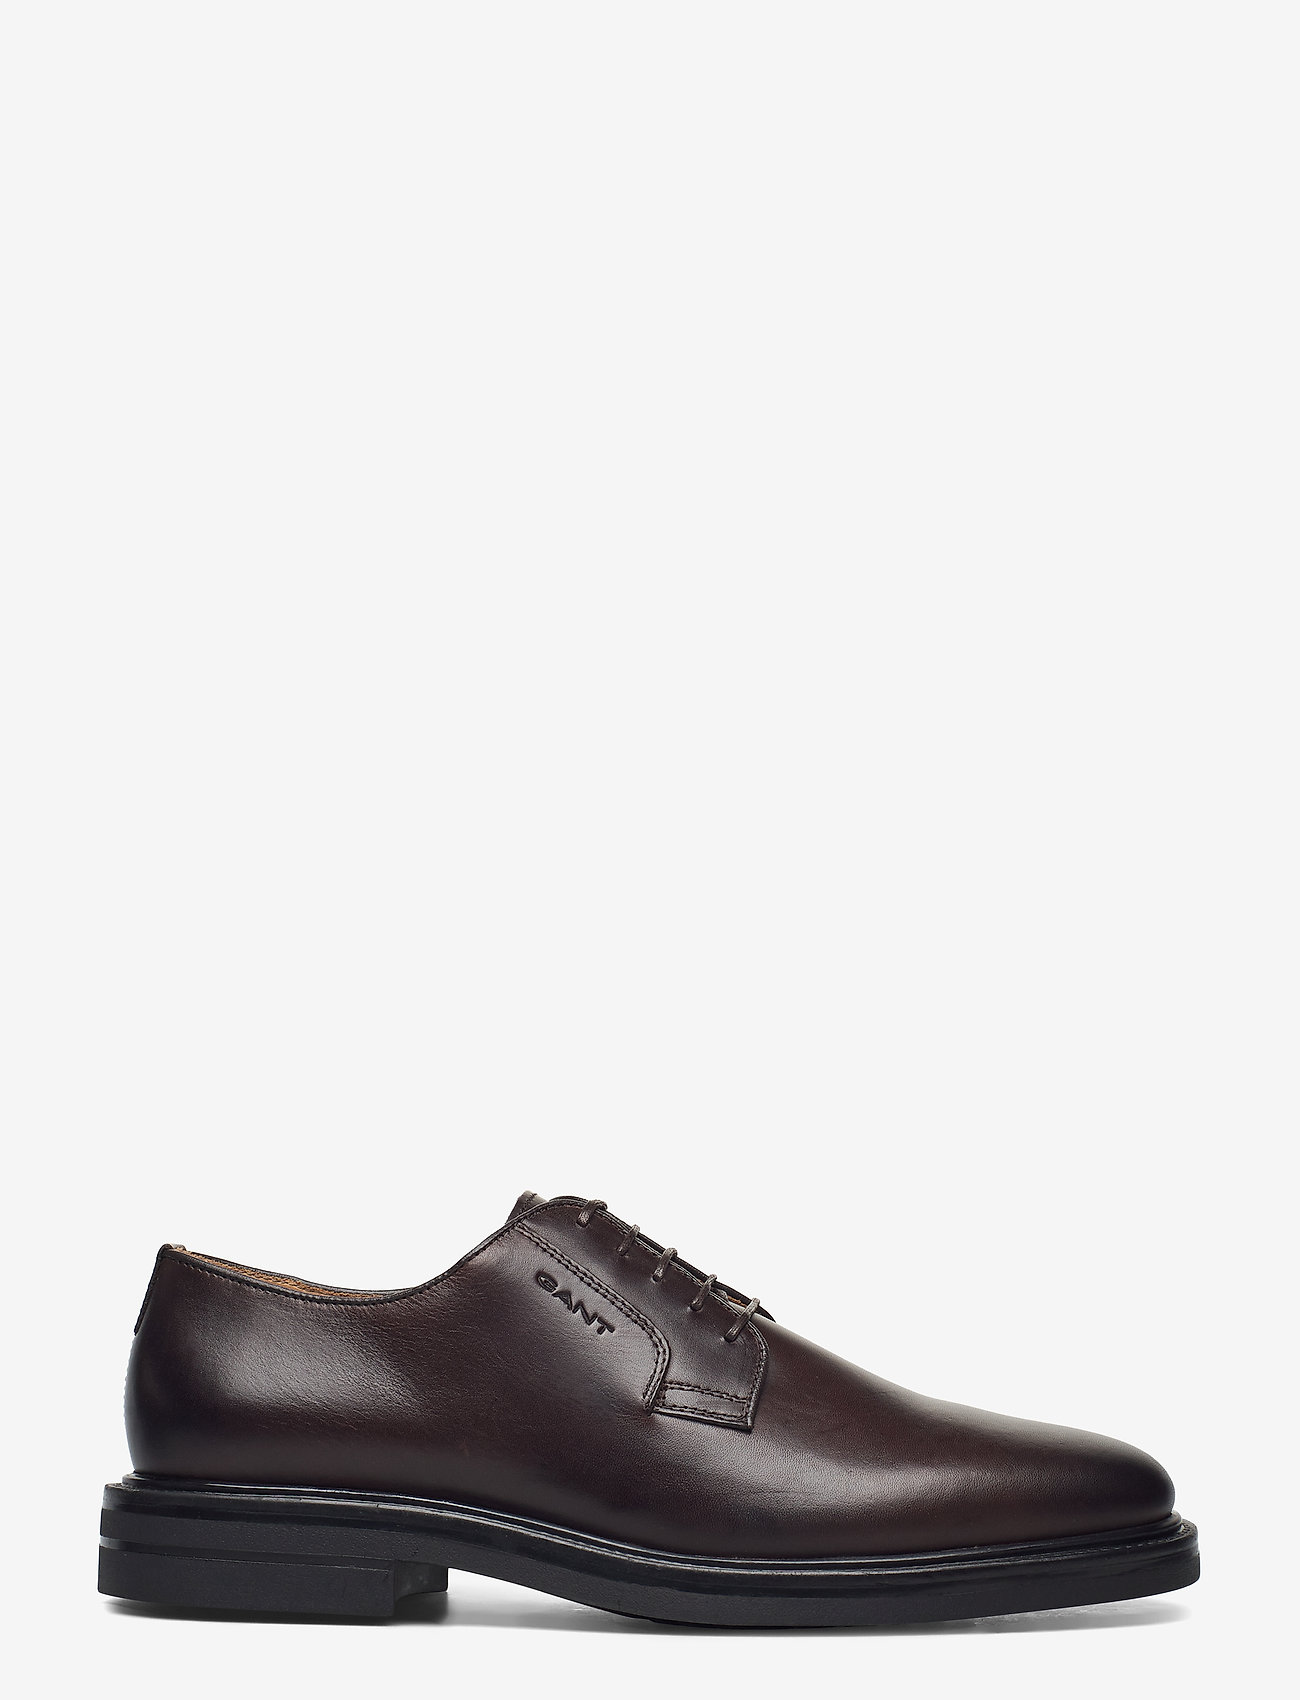 GANT - Kyree Low lace shoes - laced shoes - dark brown - 1